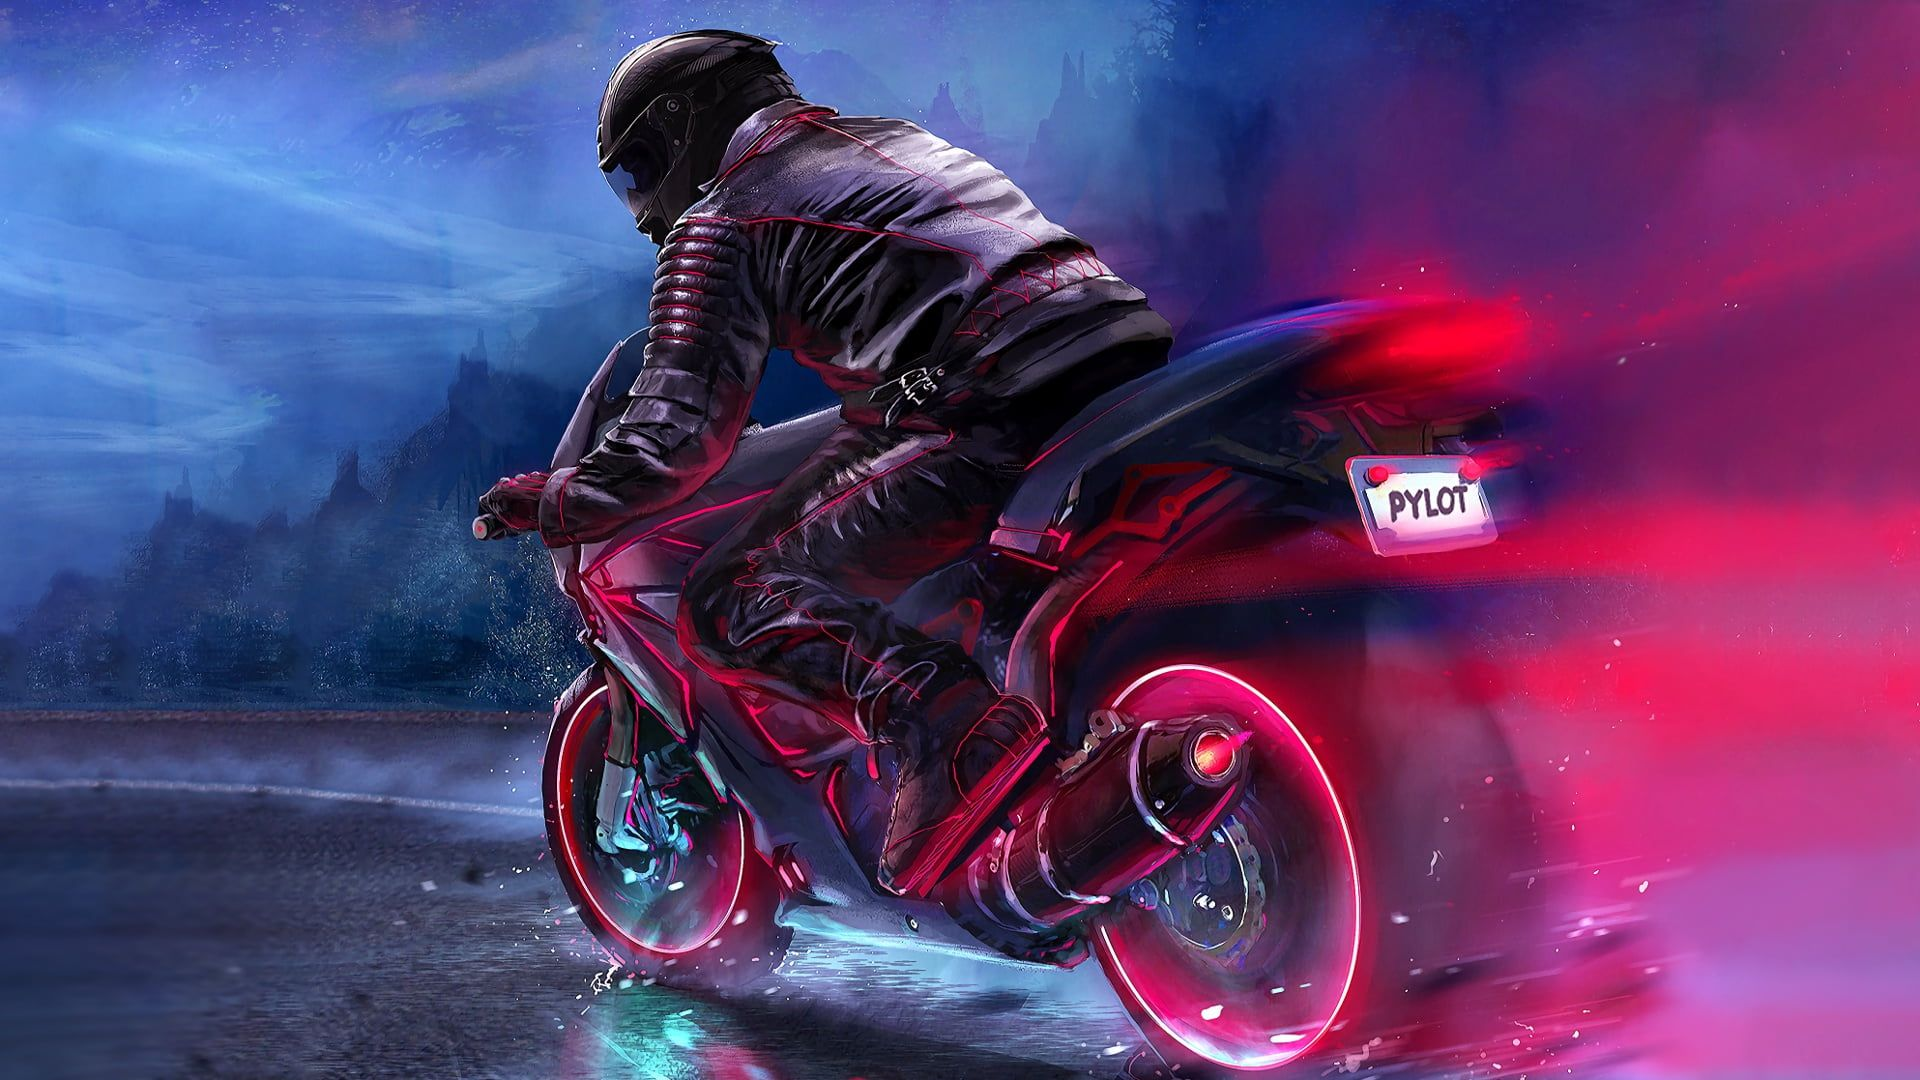 Black And Red Sports Bike Digital Art Motorcycle Pilot Fantasy